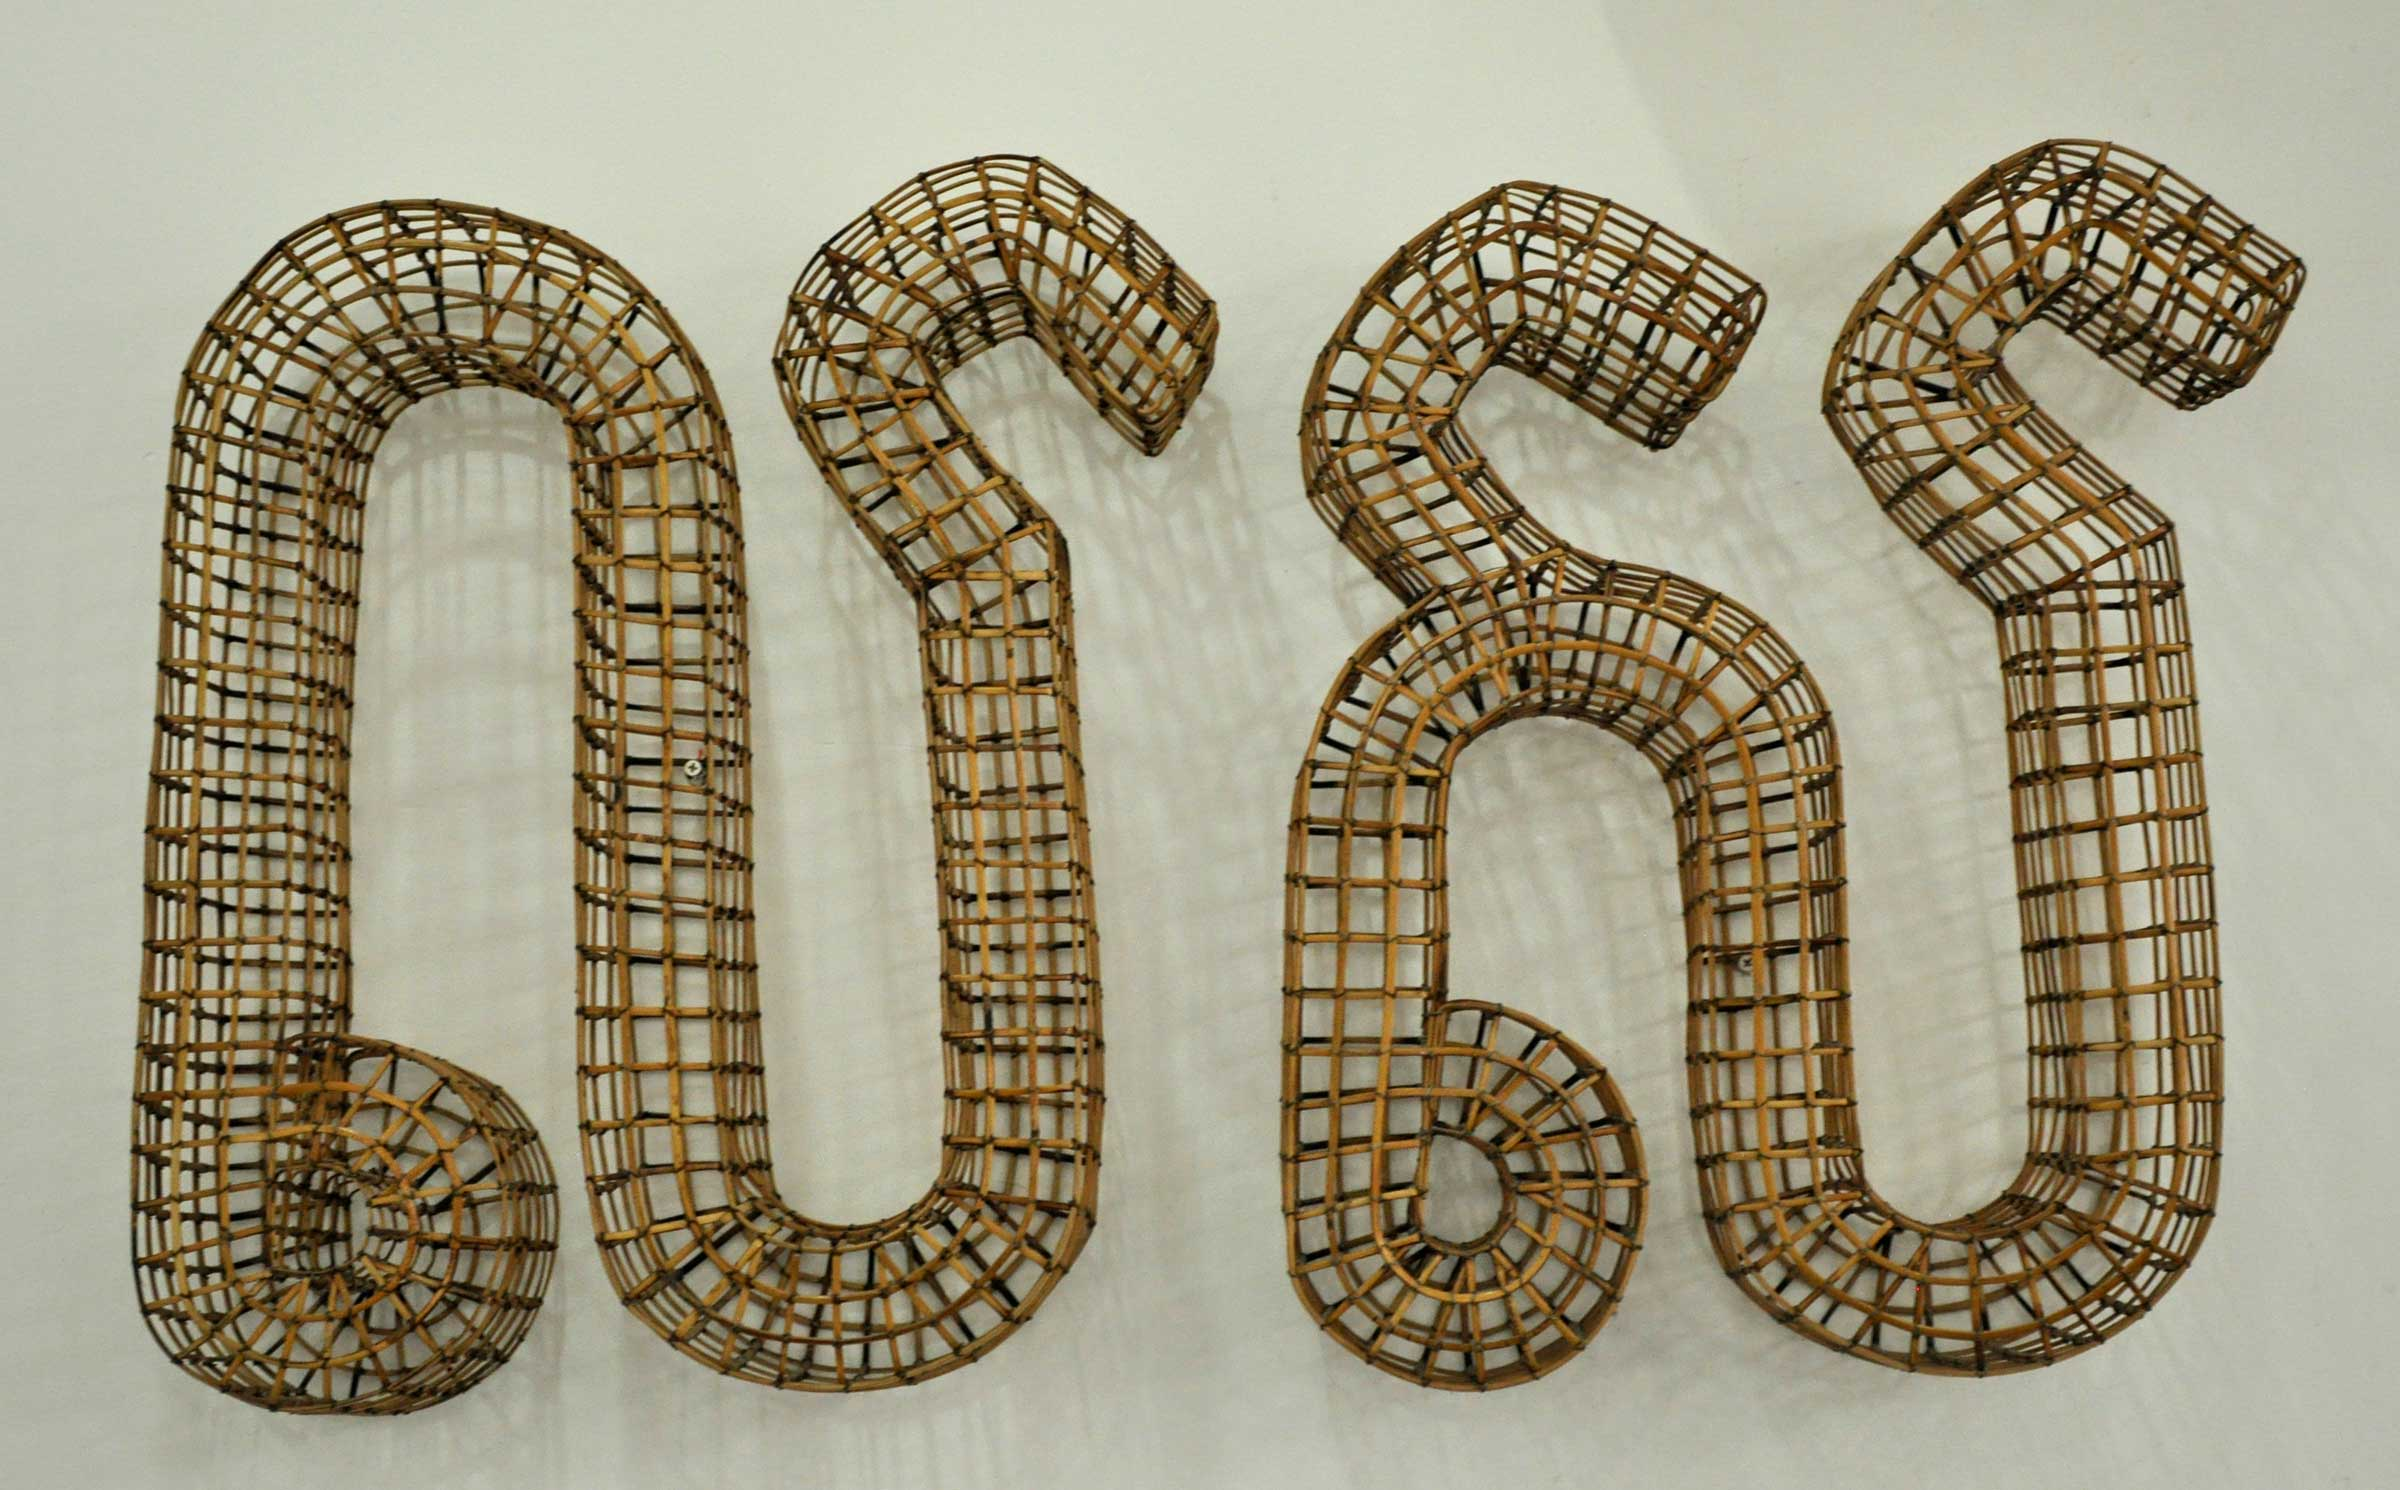 Pich Sopheap,  Sculpture Khmer Alphabets , 2012. 93 x 55 x 15cm. Image courtesy of Larry Strange and the artist